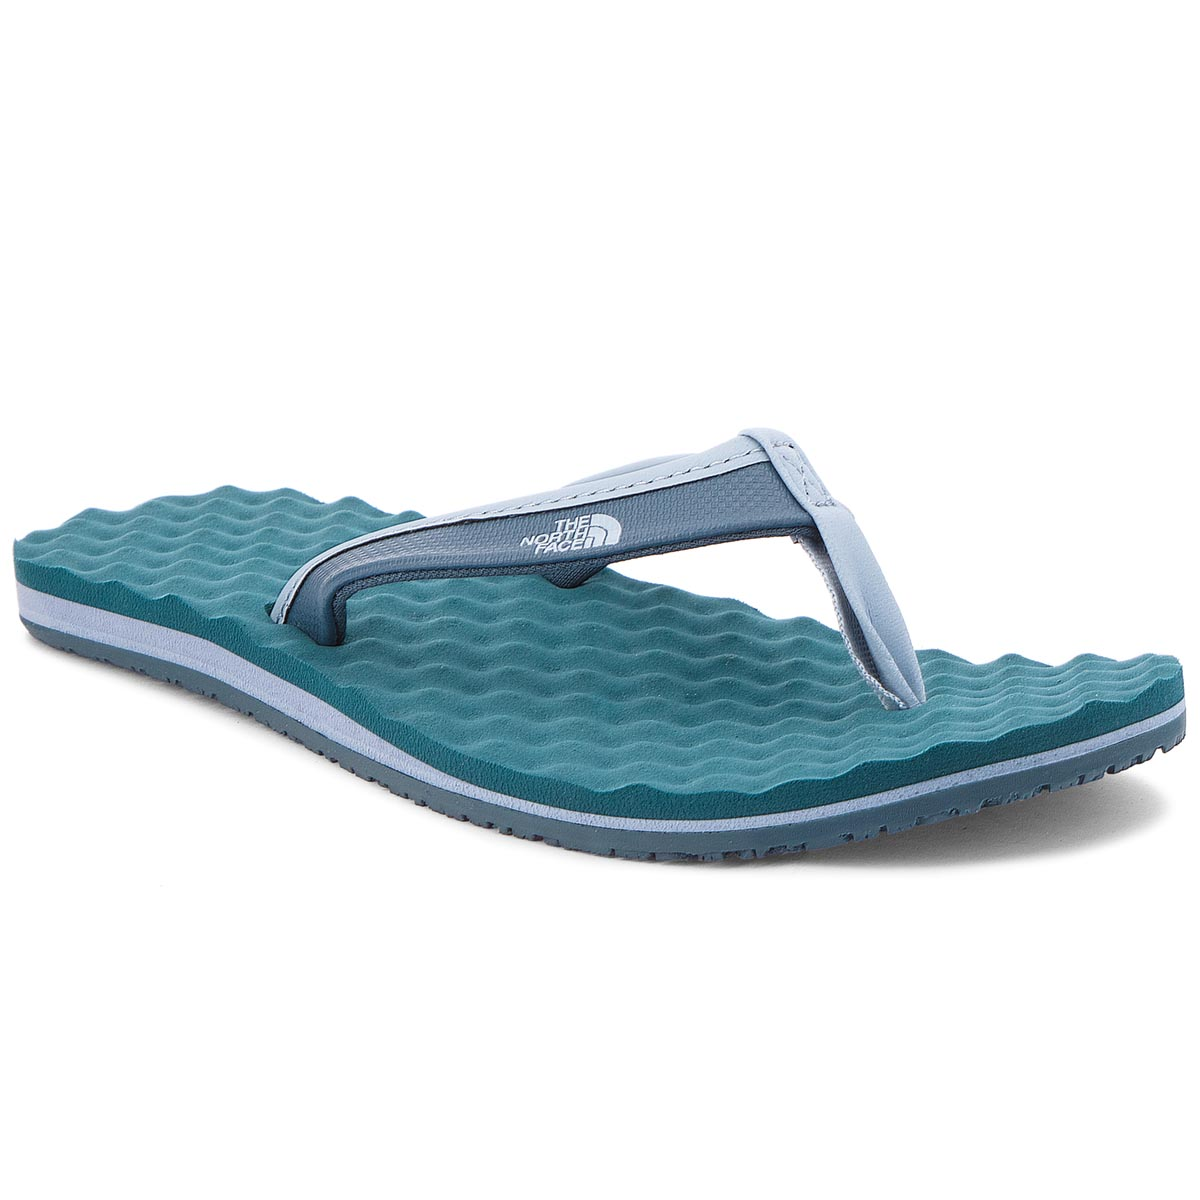 Flip flop THE NORTH FACE - Base Camp Mini T0A06Q4FD Blucrl/Dustyblu